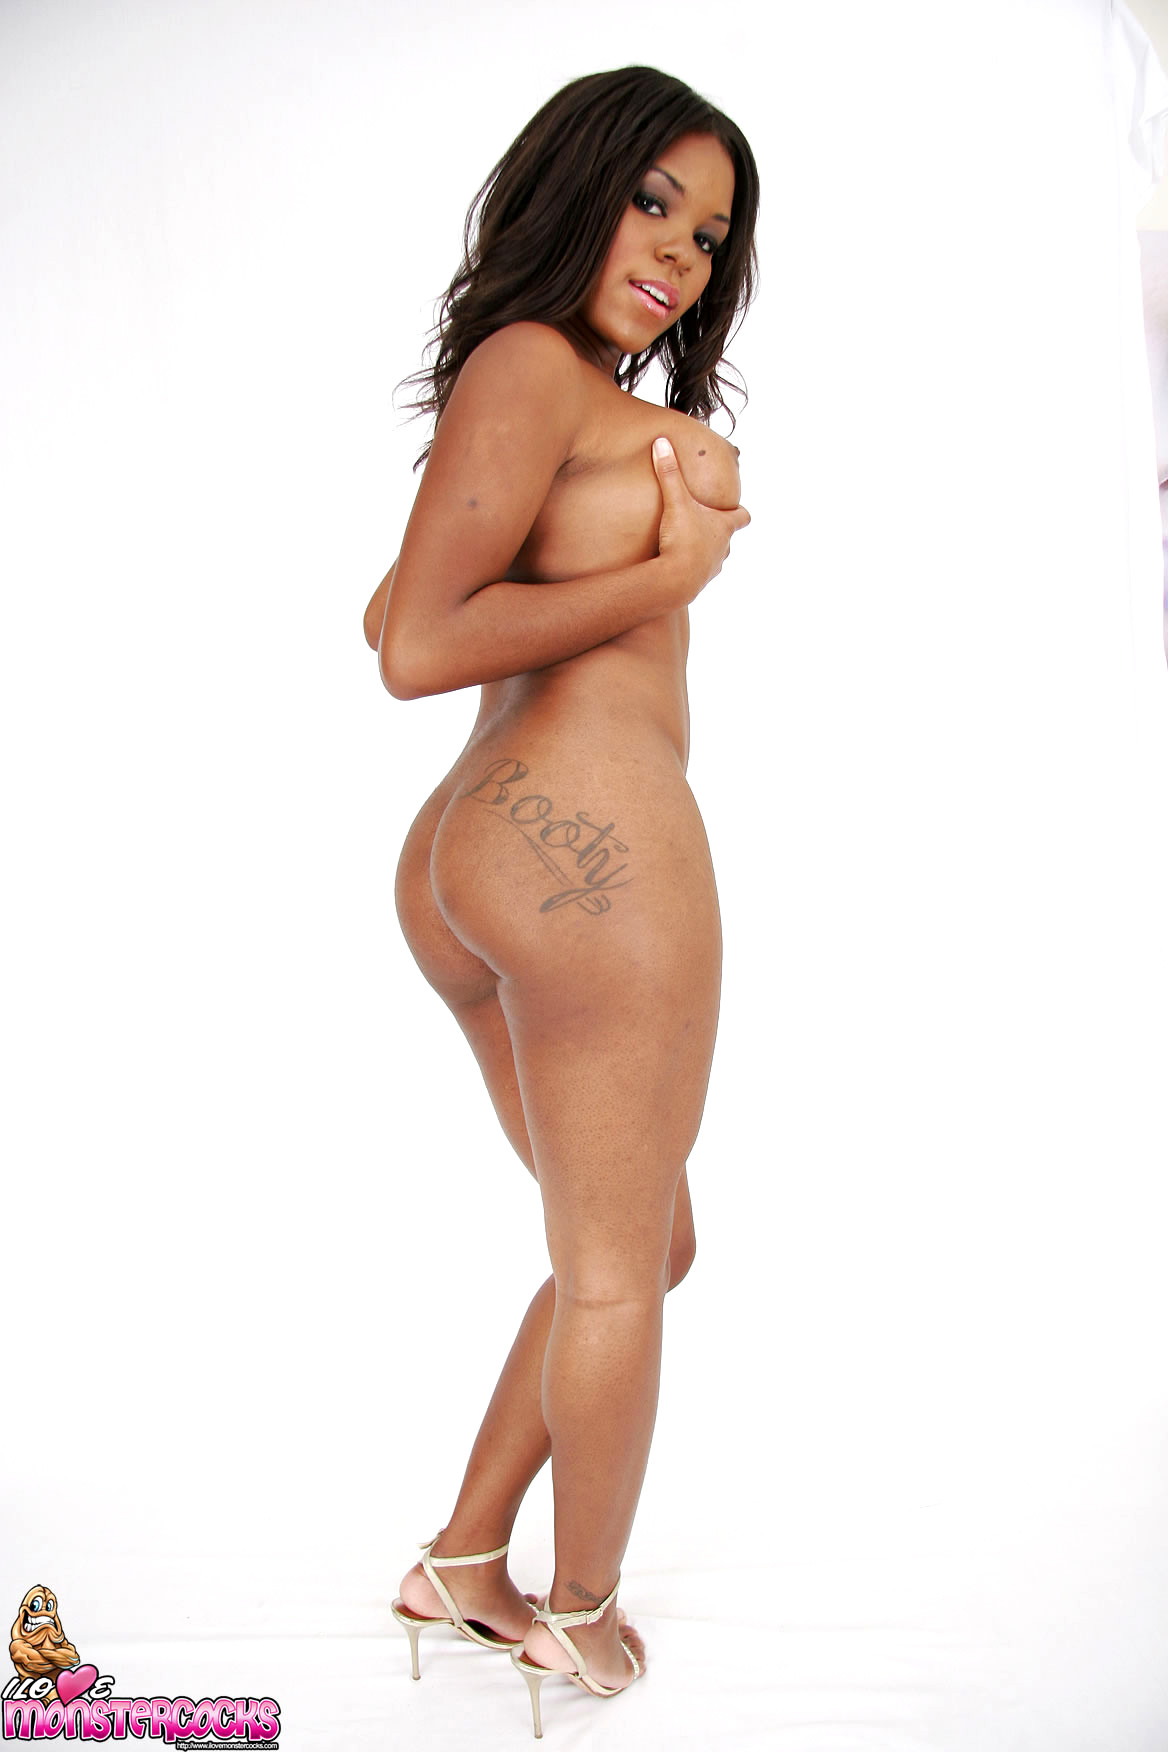 Candice nicole naked with pinky